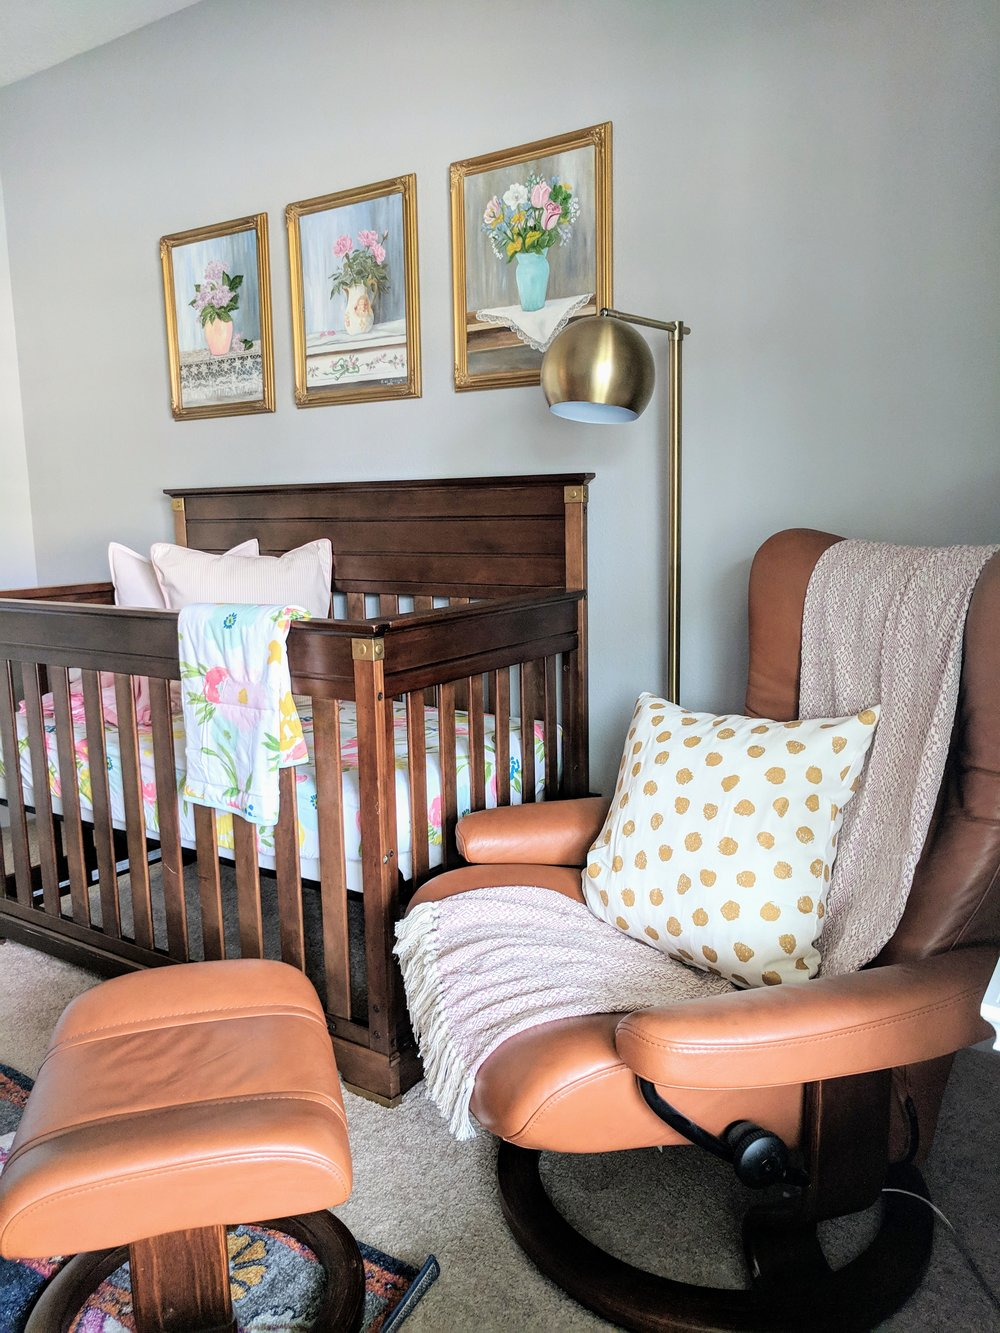 re-purposing a boy crib for a girl